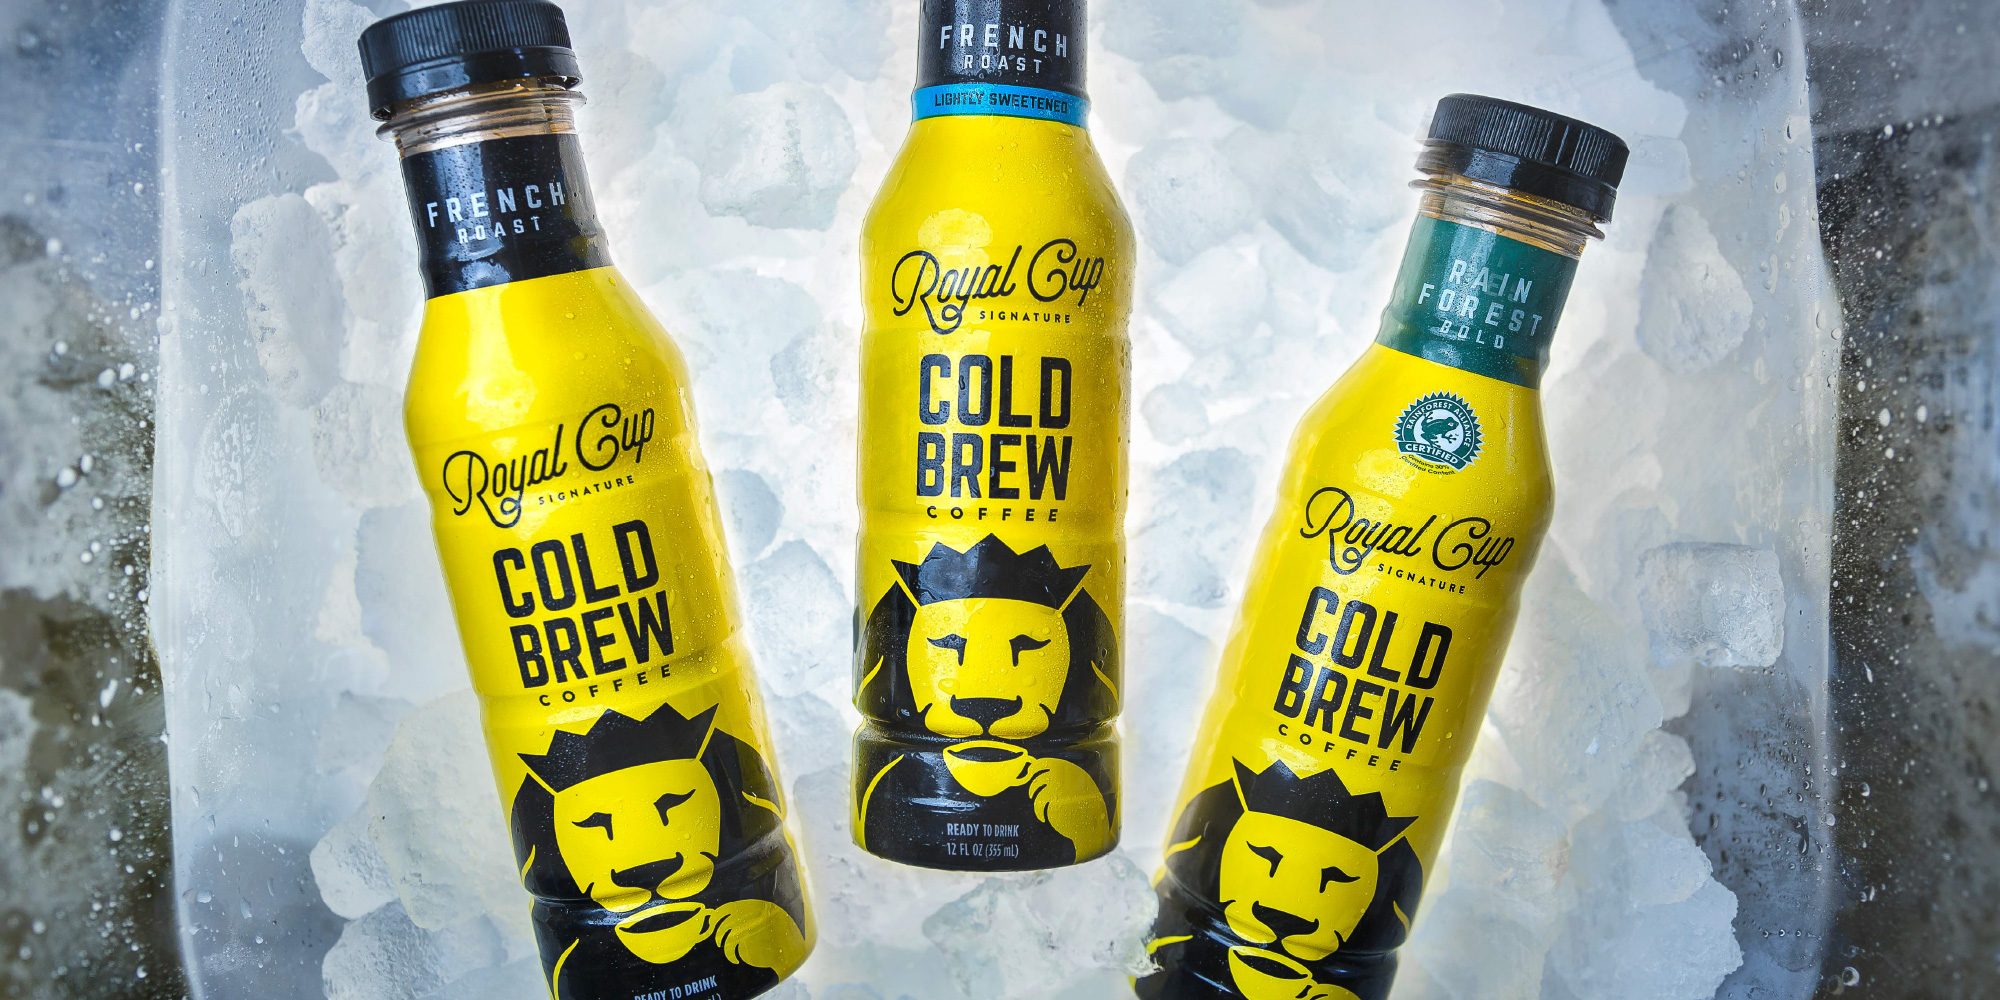 Royal Cup Cold Brew Coffee